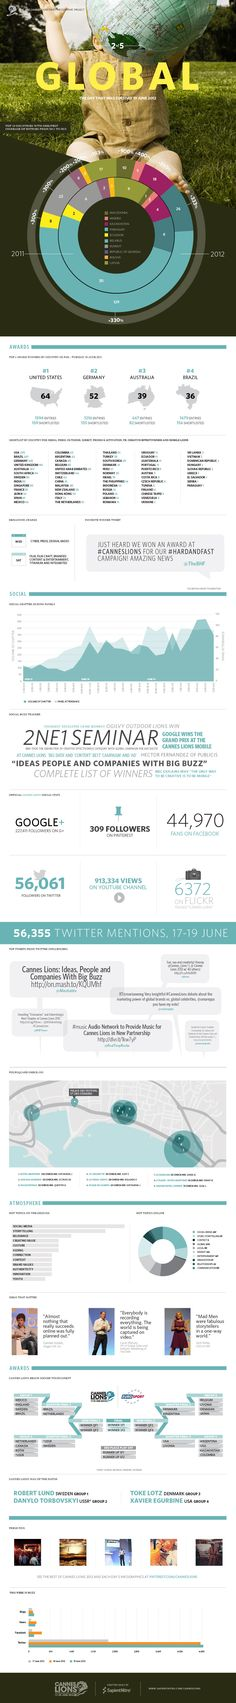 The 2012 #CannesLions Daily Infographic Project: Tuesday 19 June. Created daily by @SapientNitro